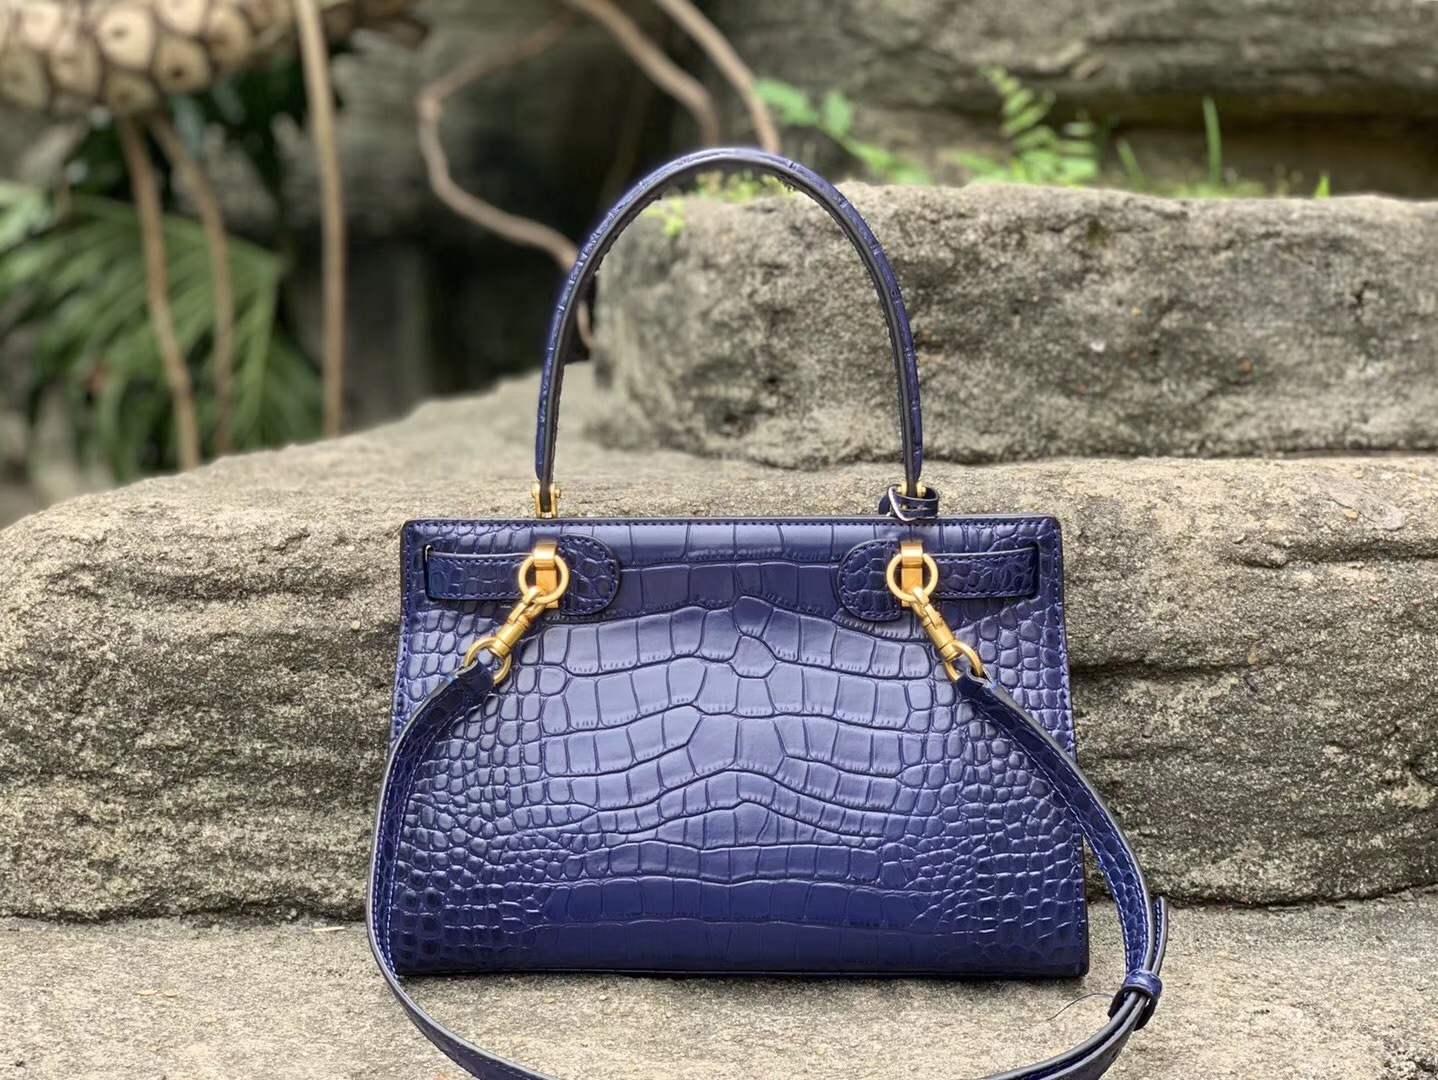 Tory Burch Small Lee Radziwill Embossed Leather Satchel